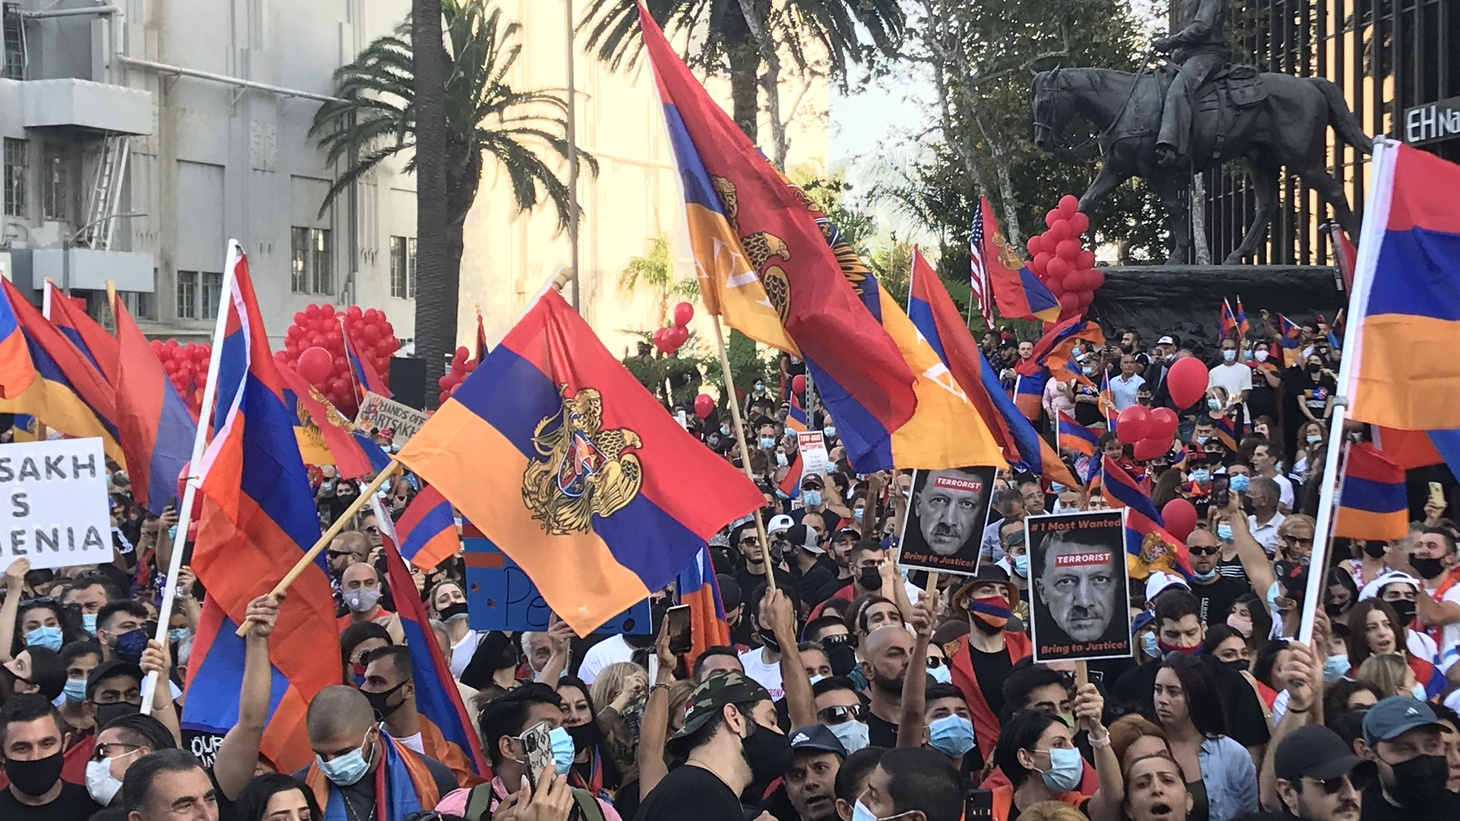 Protesters waving flags of Armenia and the self-proclaimed Republic of Artsakh during a rally near the Turkish consulate in Beverly Hills on October 11, 2020.